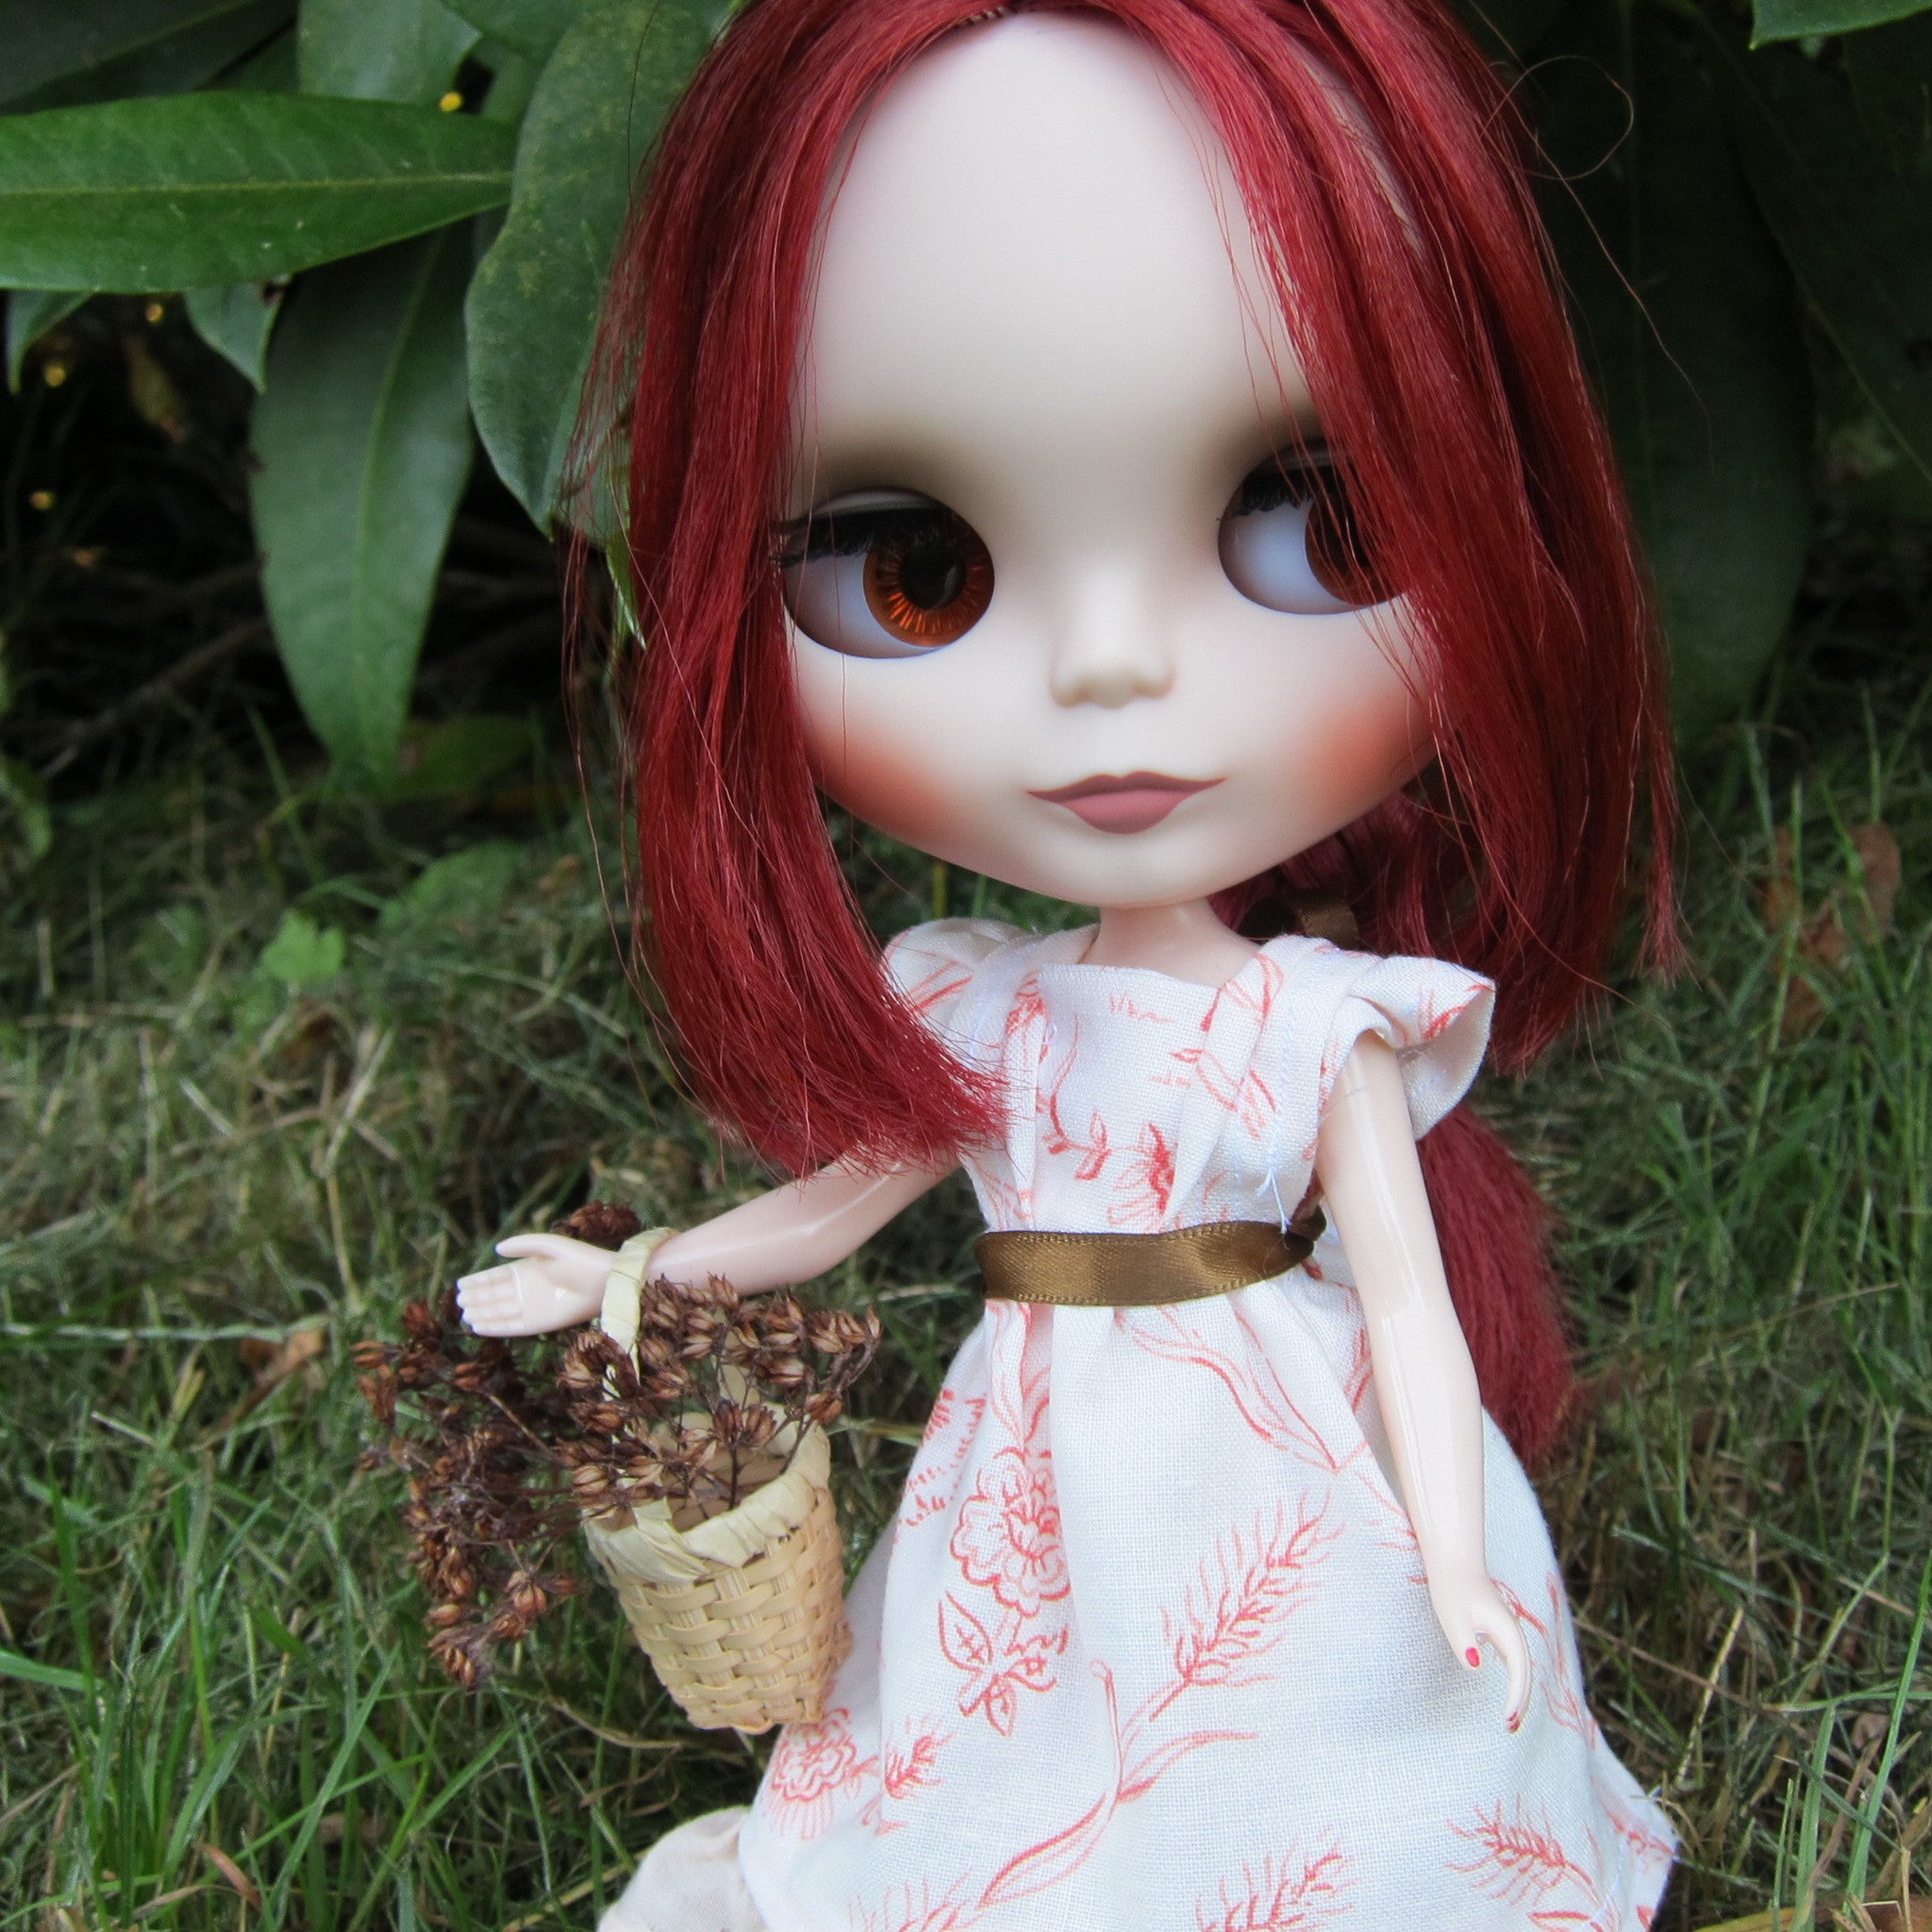 Miniature basket for Blythe, Pullip, and playscale dolls